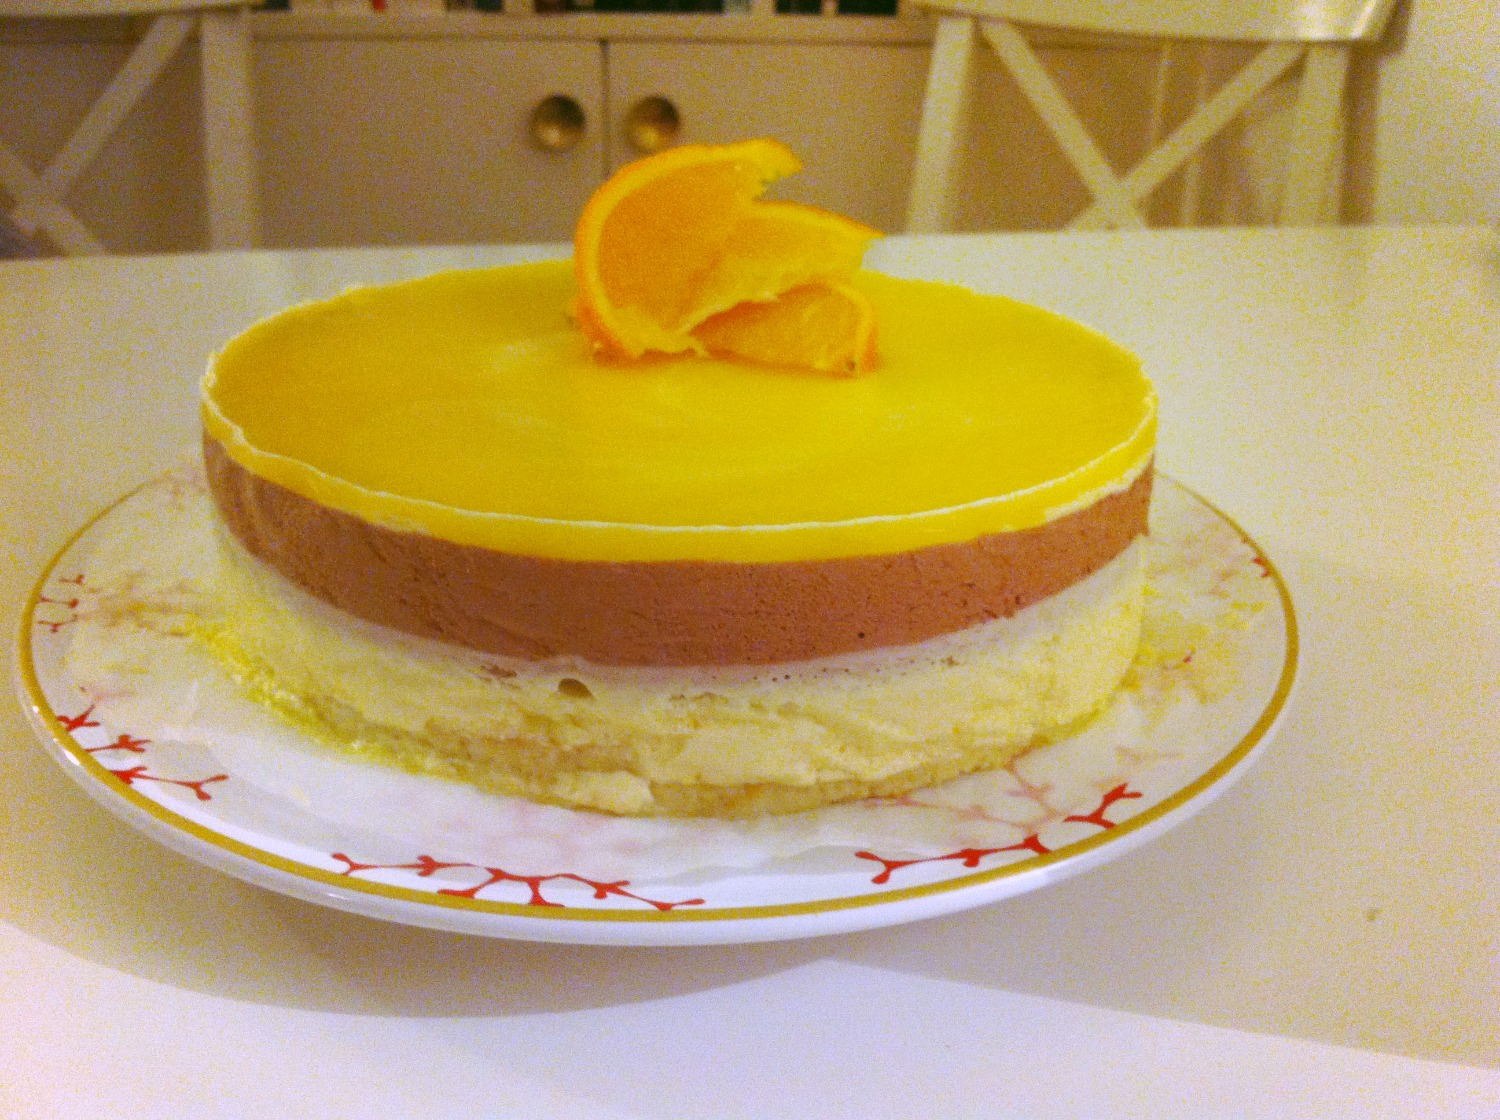 Cake with citrus of my sister